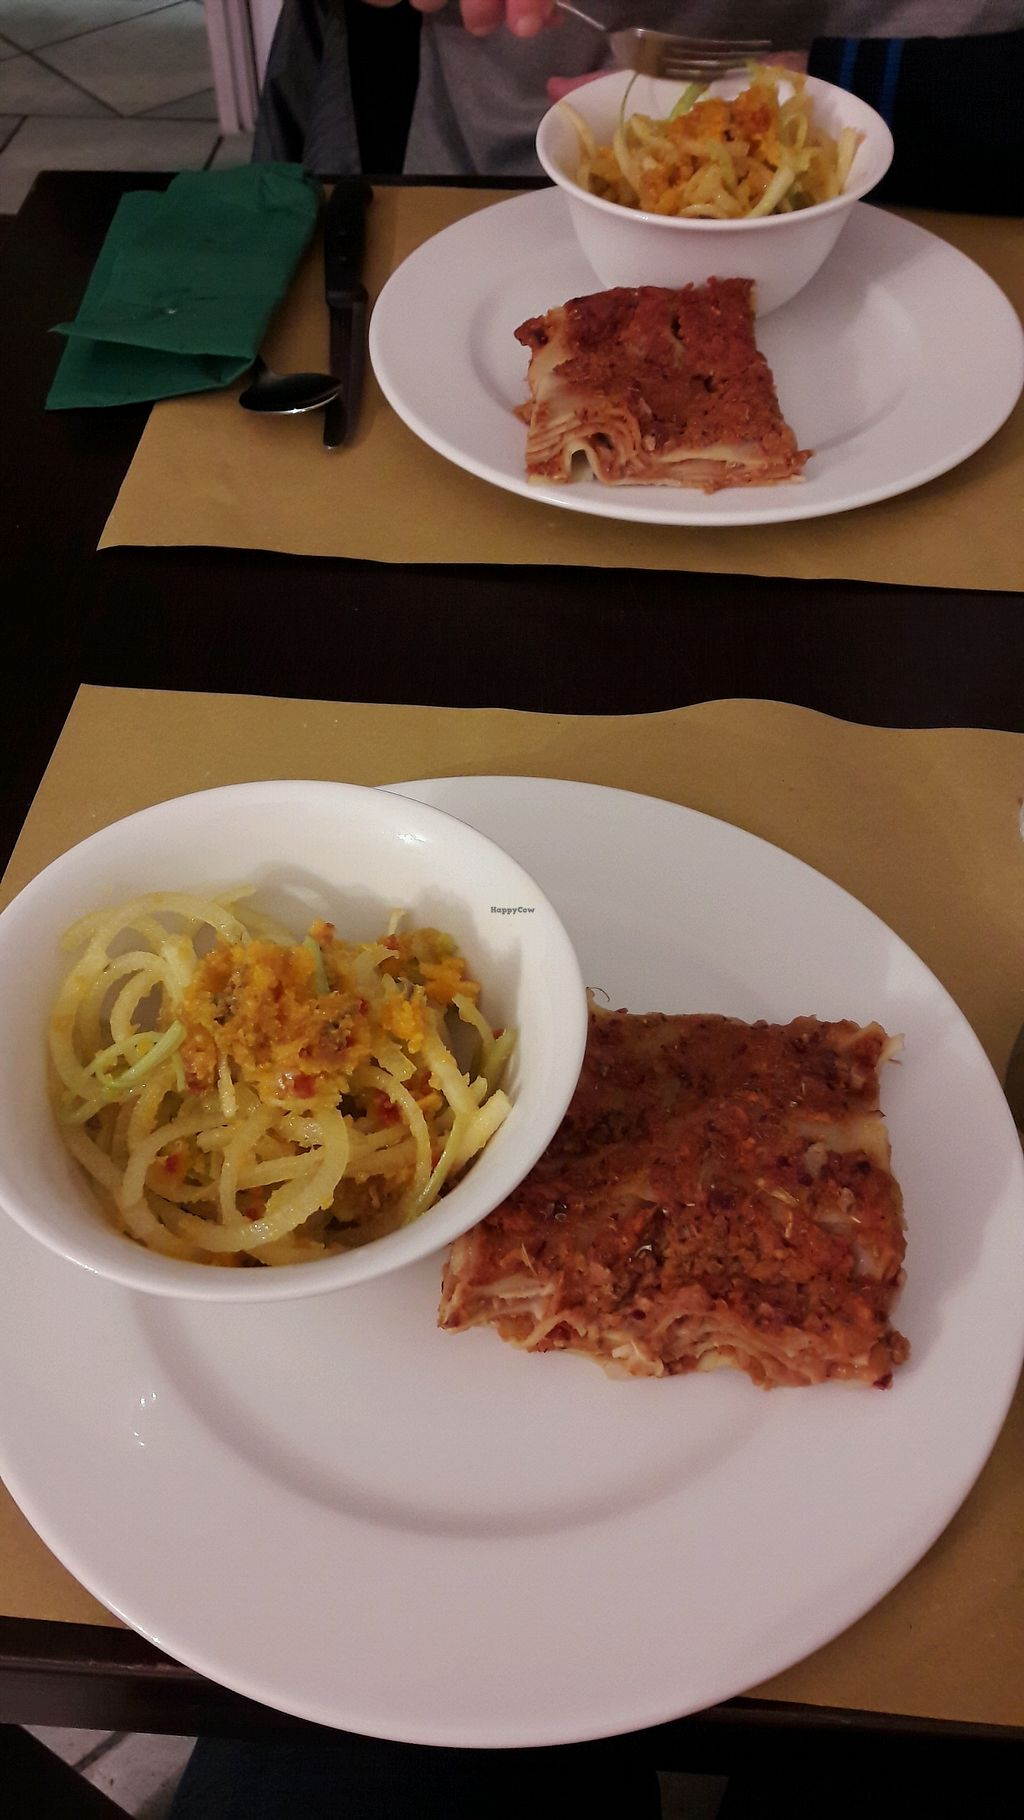 "Photo of Un'Altra Idea  by <a href=""/members/profile/KristM"">KristM</a> <br/>Lasagne & raw veggies <br/> March 10, 2018  - <a href='/contact/abuse/image/83717/368995'>Report</a>"